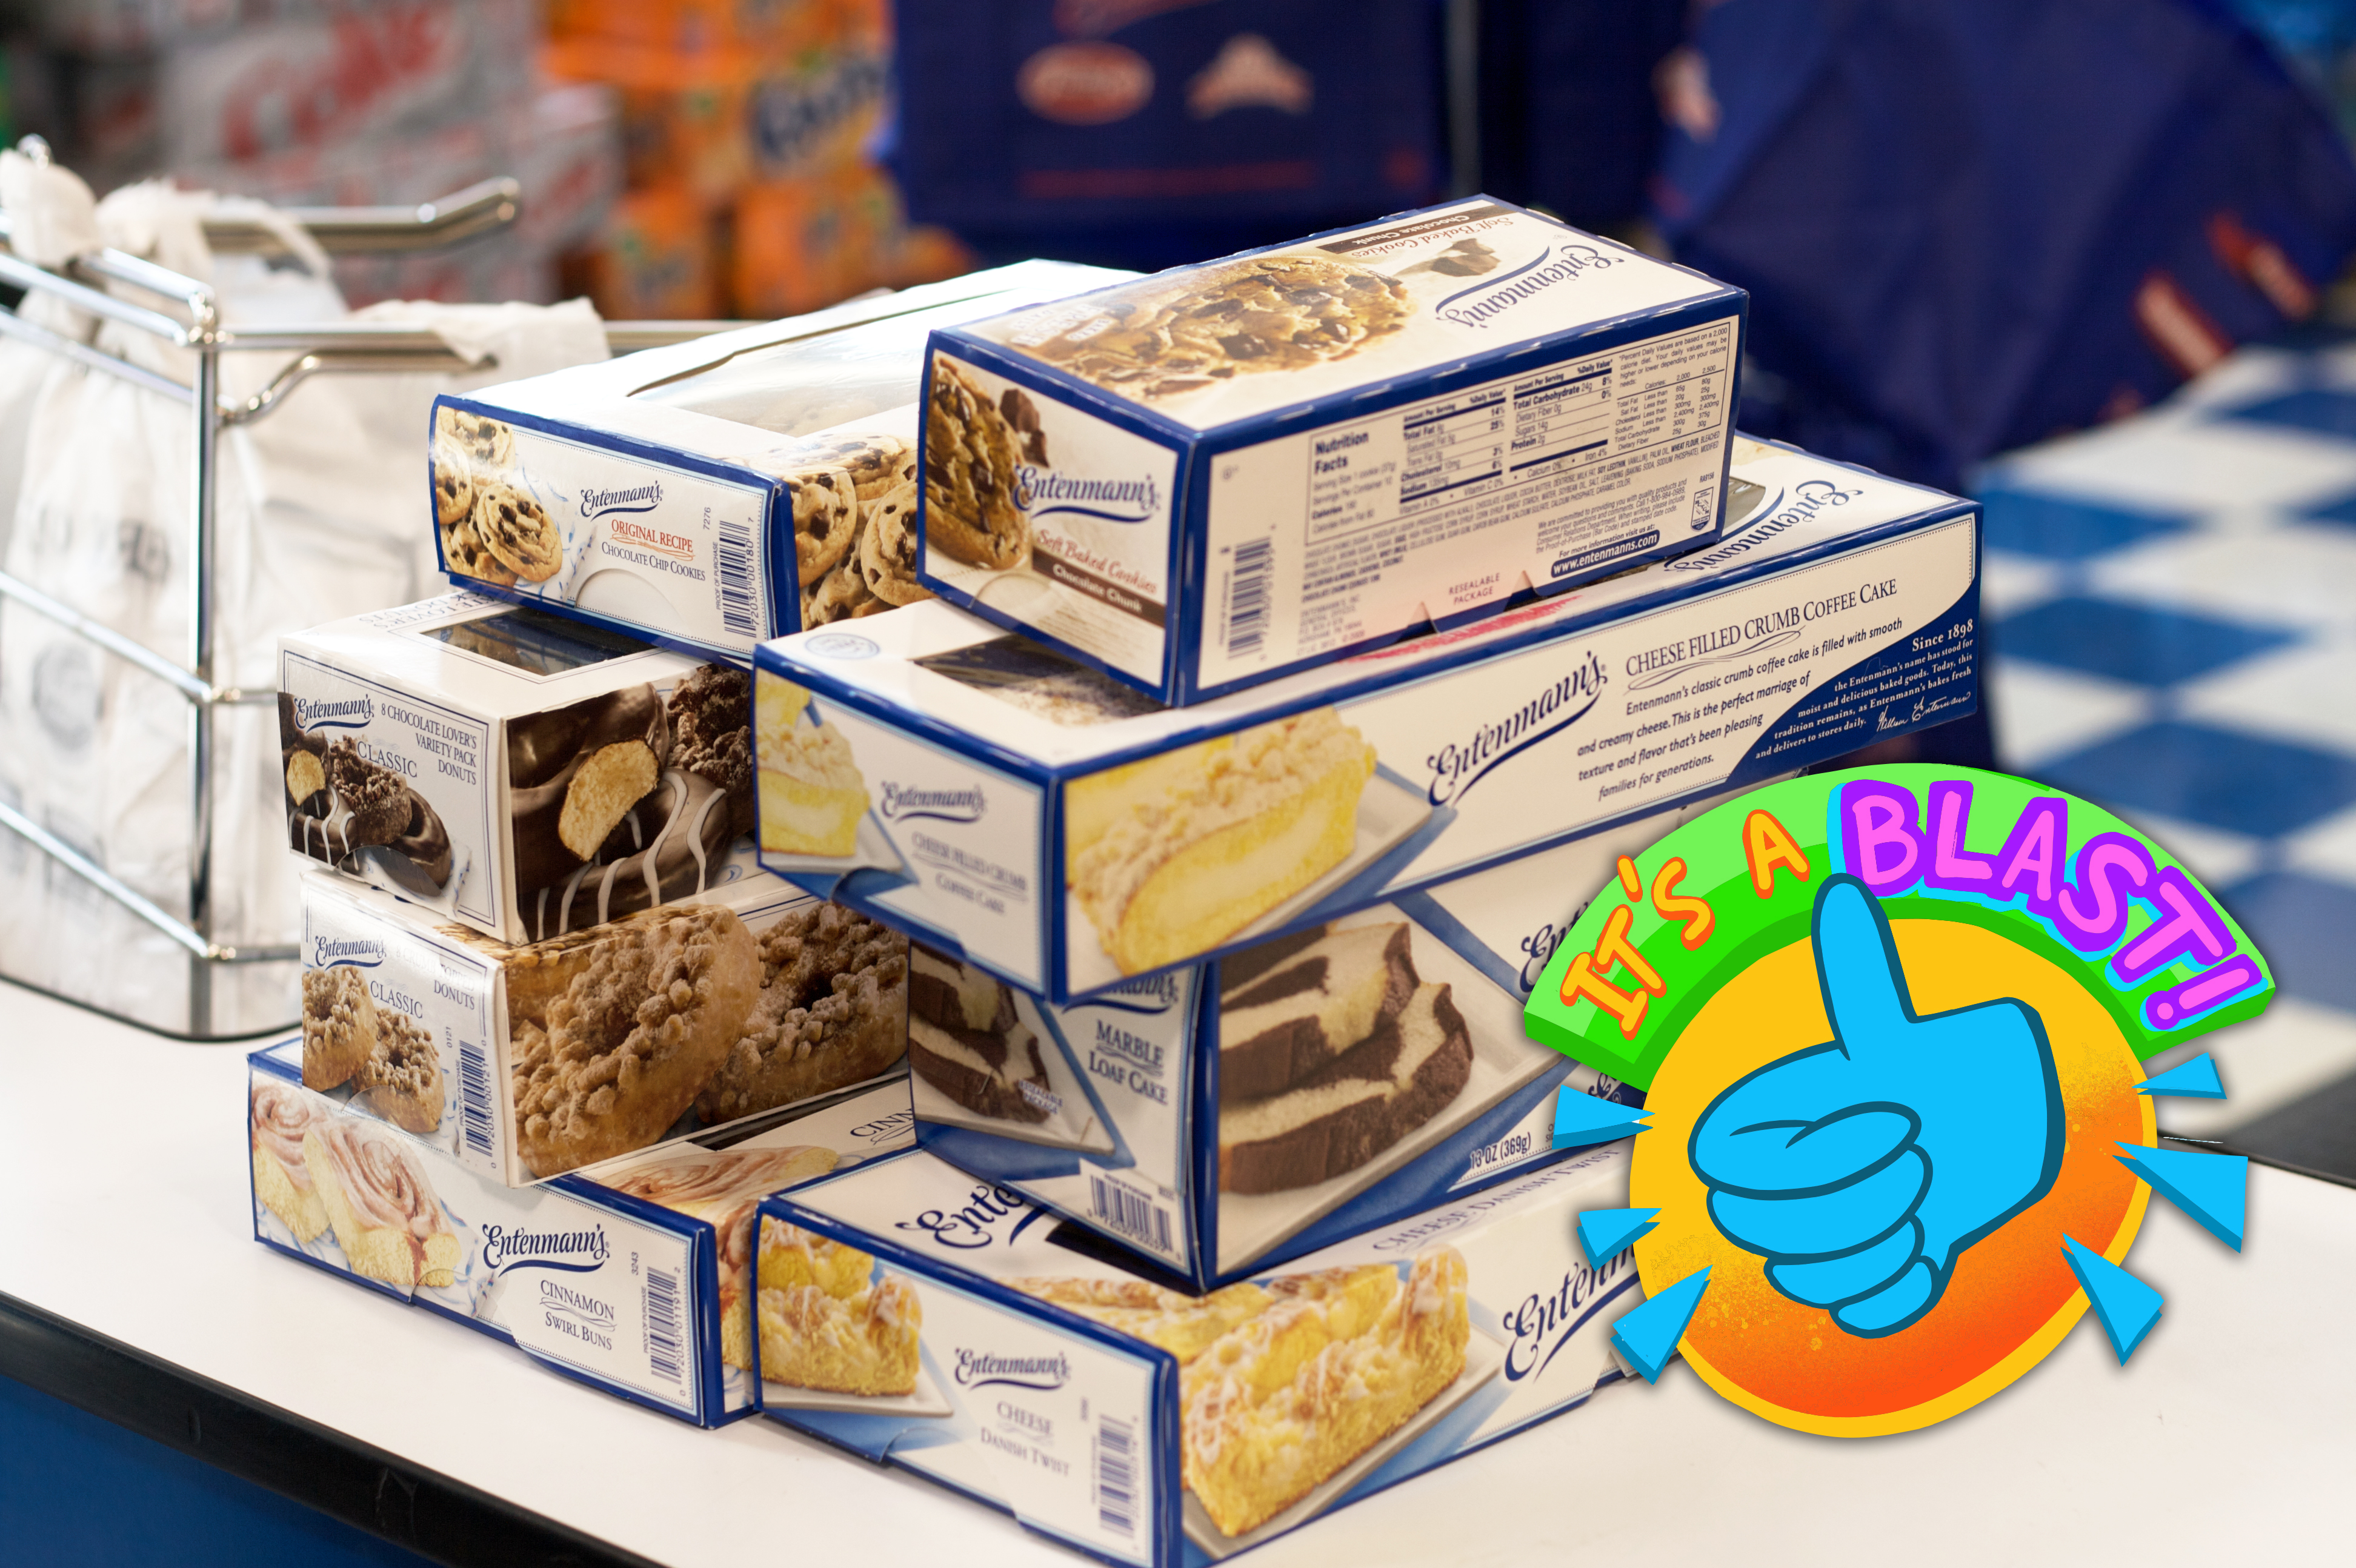 Eight boxes containing different Entenmann's baked items stacked on a checkout counter.